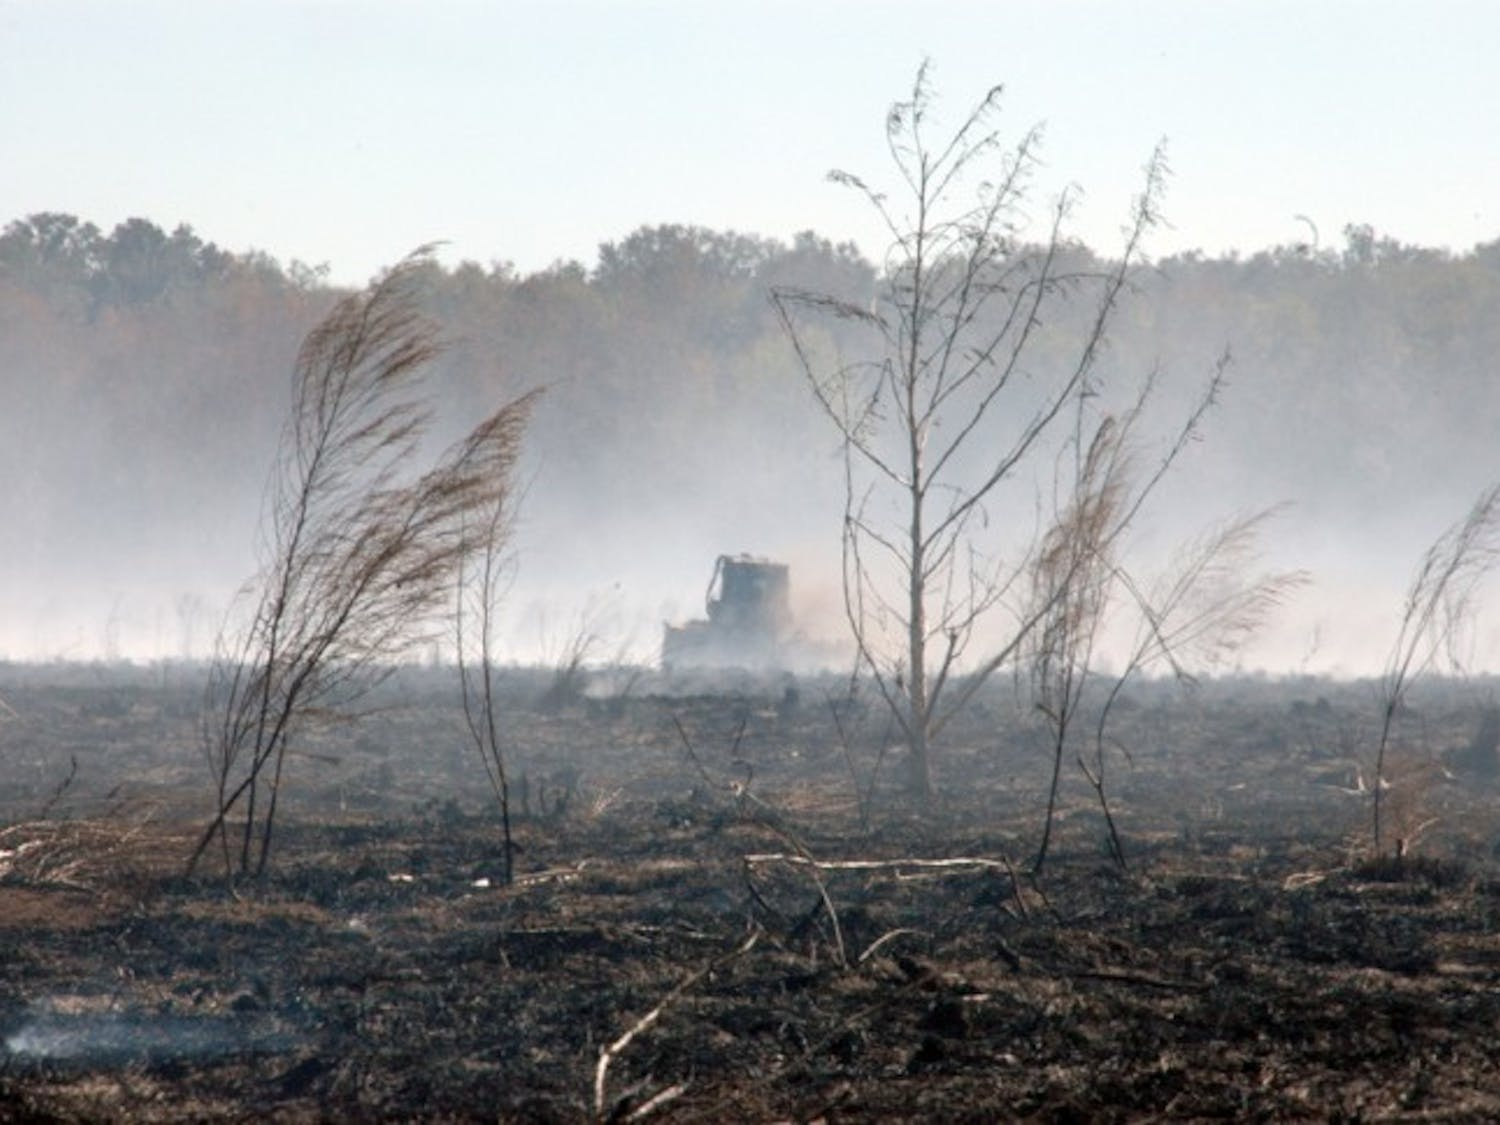 A tractor drives across a burned section of Paynes Prairie Preserve State Park on Monday afternoon. The smoke from the prairie fire caused a series of crashes Sunday morning that killed at least 10 people.